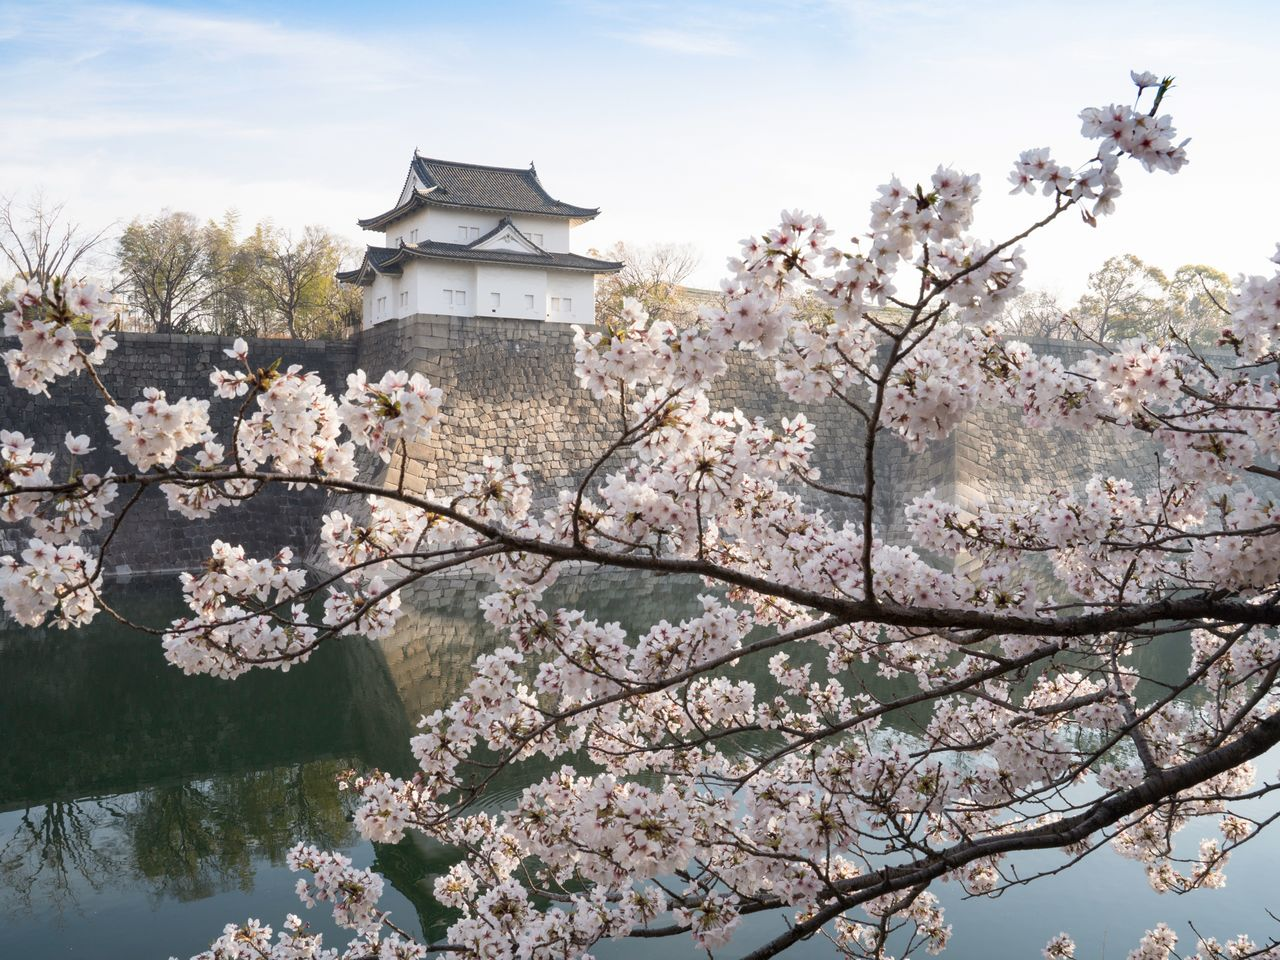 <em>Somei yoshino</em> cherry blossoms frame a view of the Rokuban Turret, an important cultural property, across the moat.